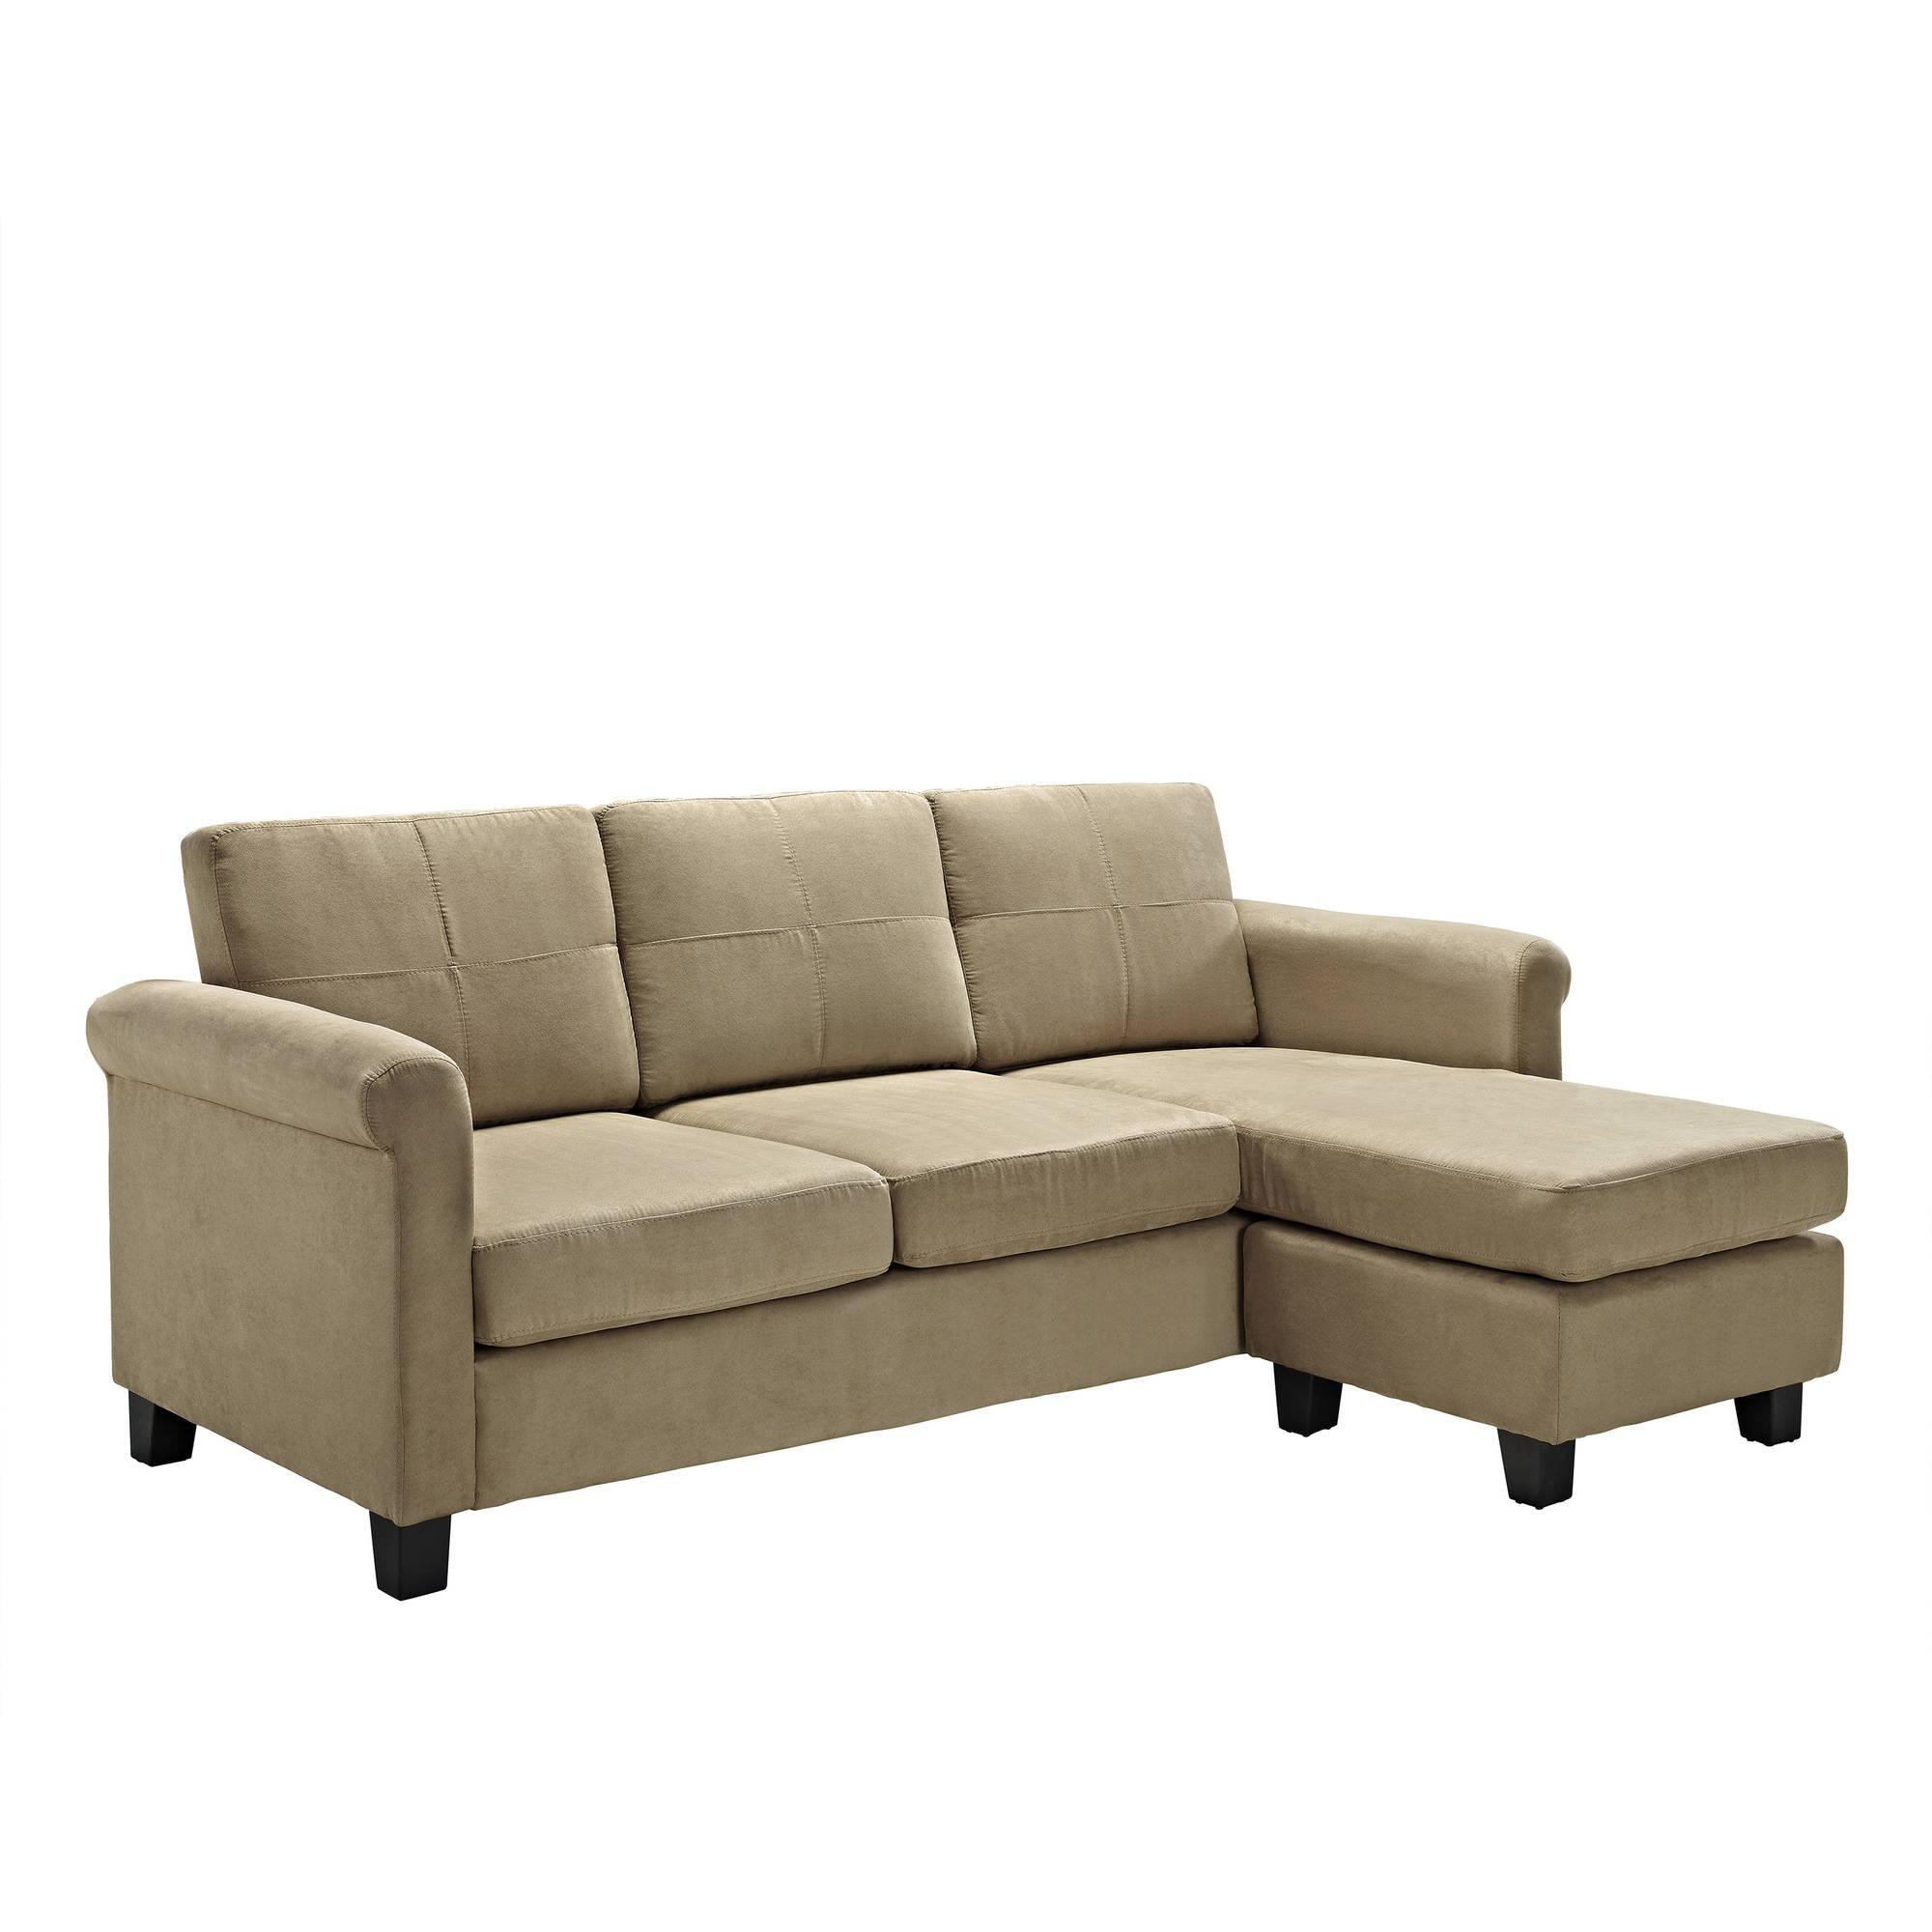 Dorel Living Small Spaces Configurable Sectional Sofa, Multiple With Small Sectional Sofas For Small Spaces (View 8 of 20)